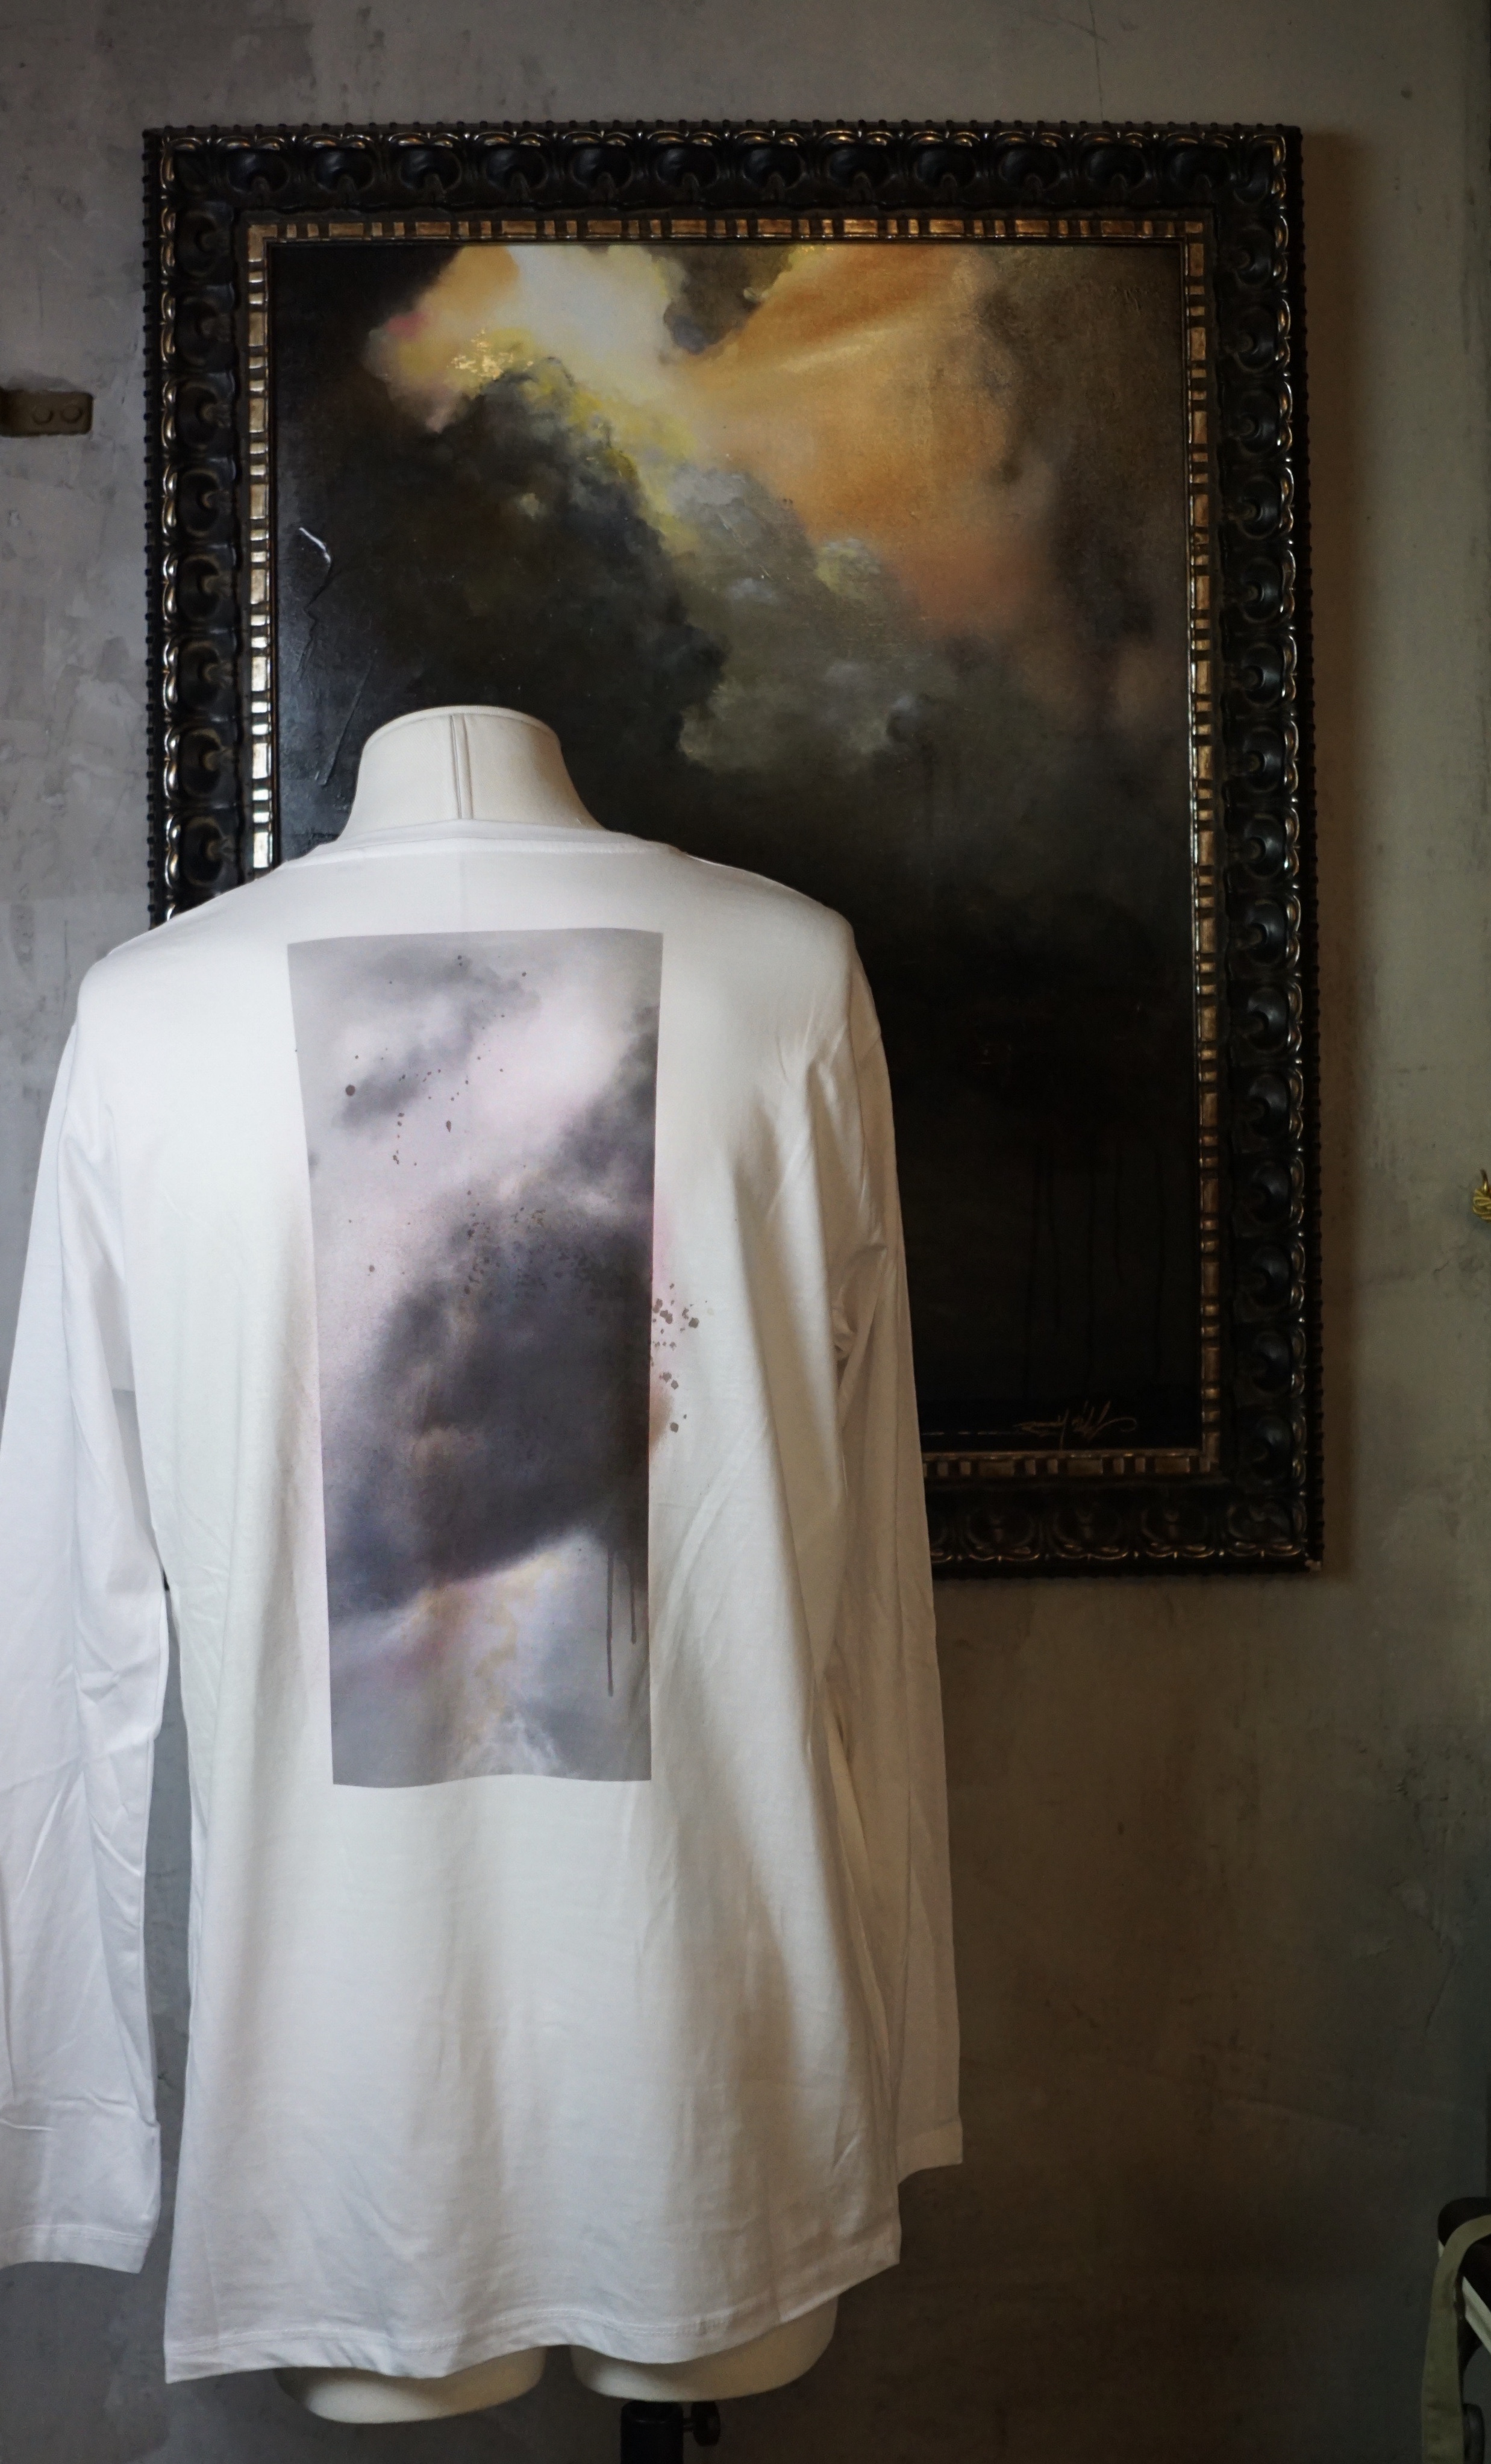 Sky long sleave t-shirt